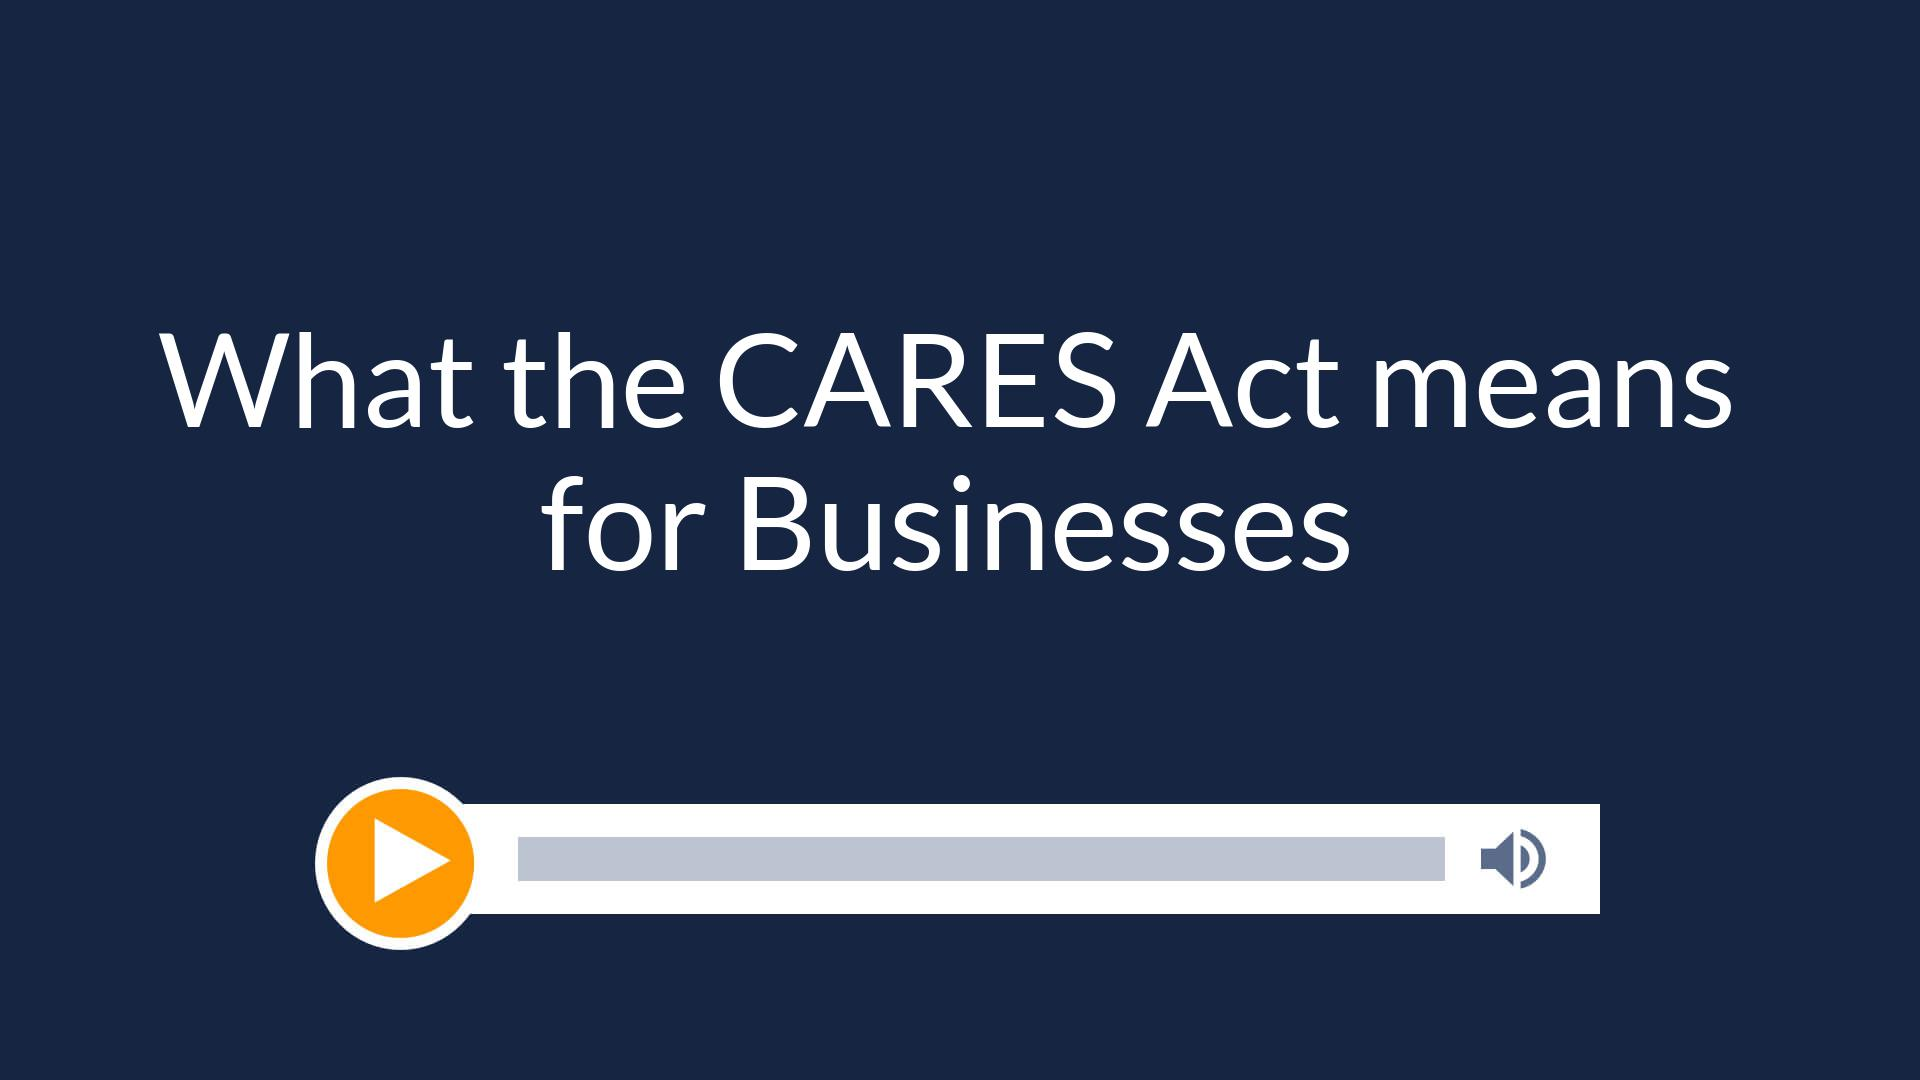 What the CARES Act means for Businesses